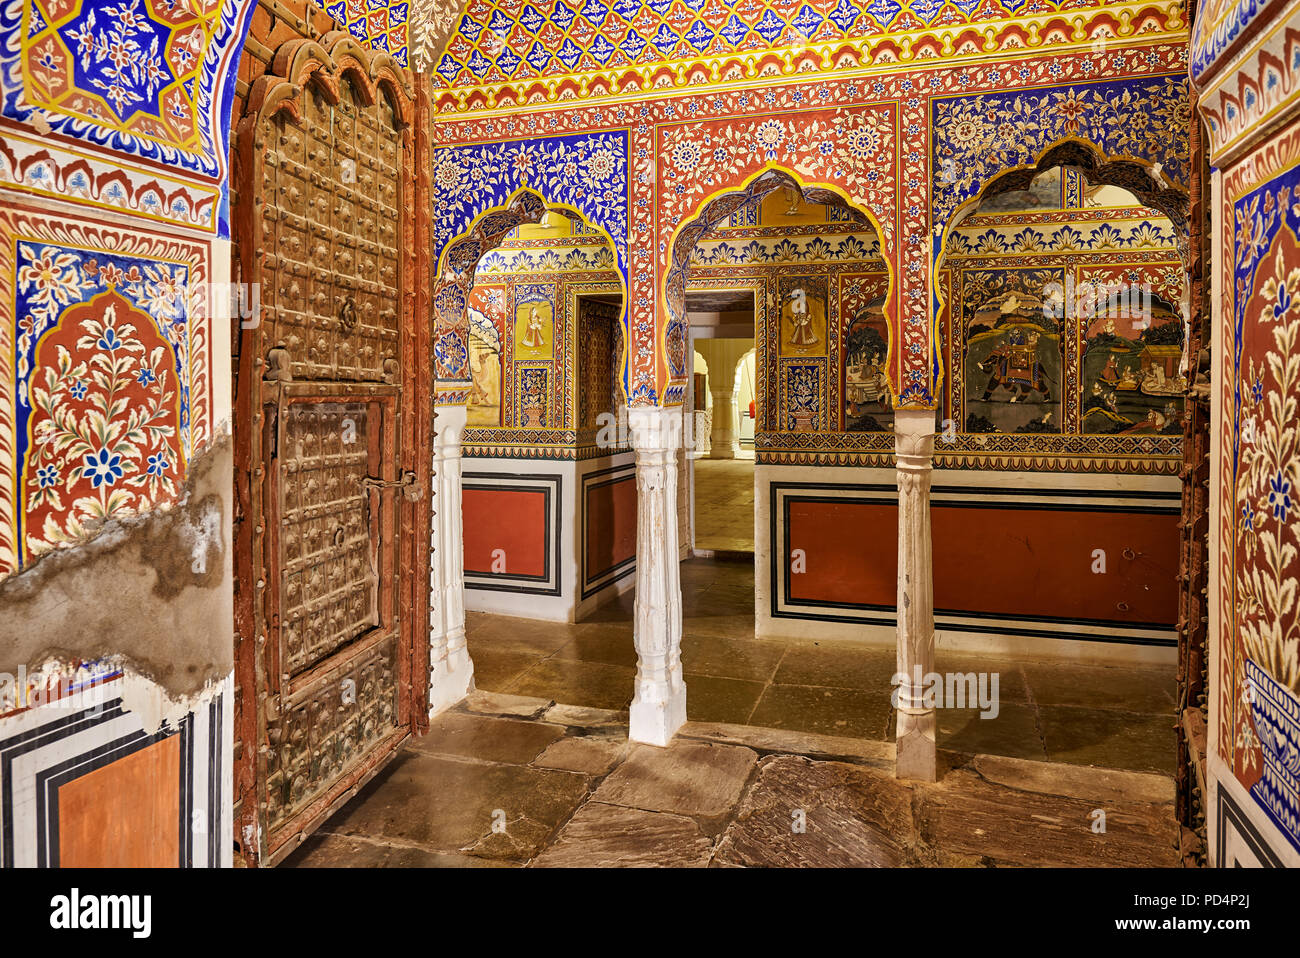 interior shot of wall paintings in Fort and Hotel castle Mandawa, Mandawa, Shekhawati Region, Rajasthan, India - Stock Image